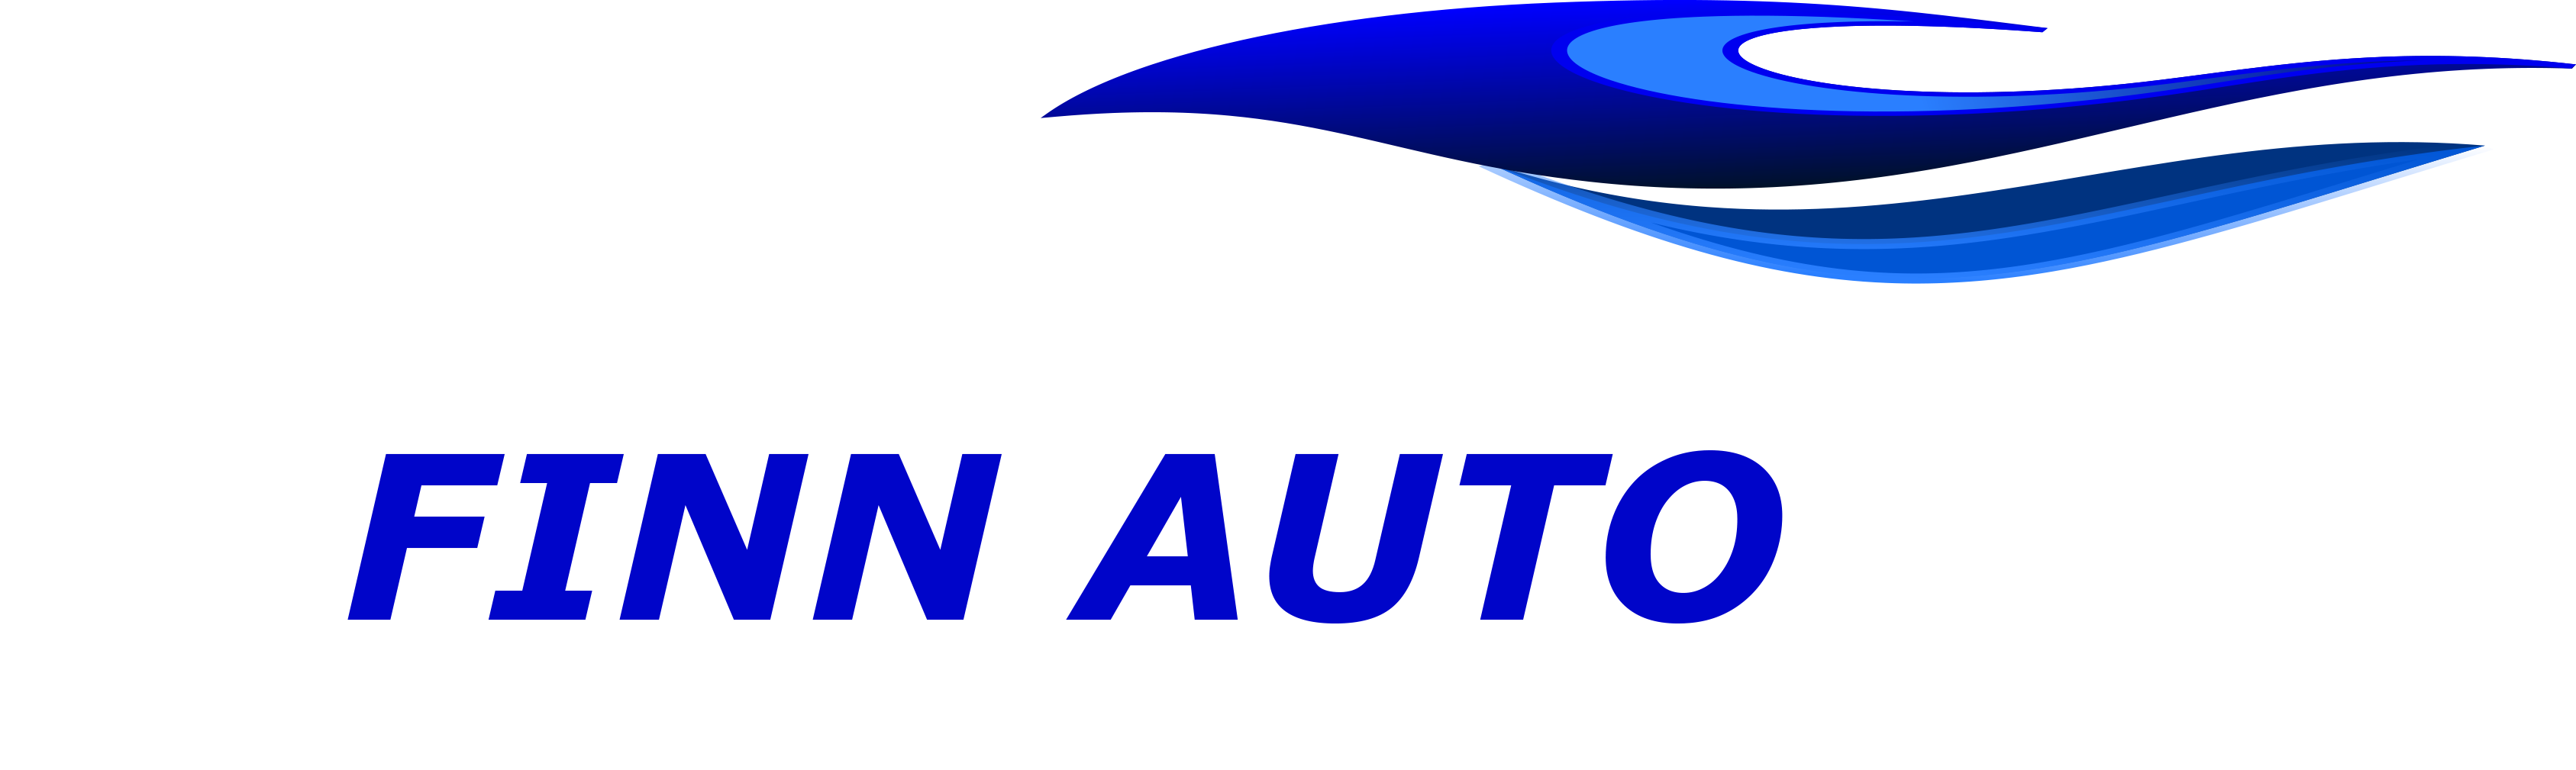 Finn Auto Performance Tuning